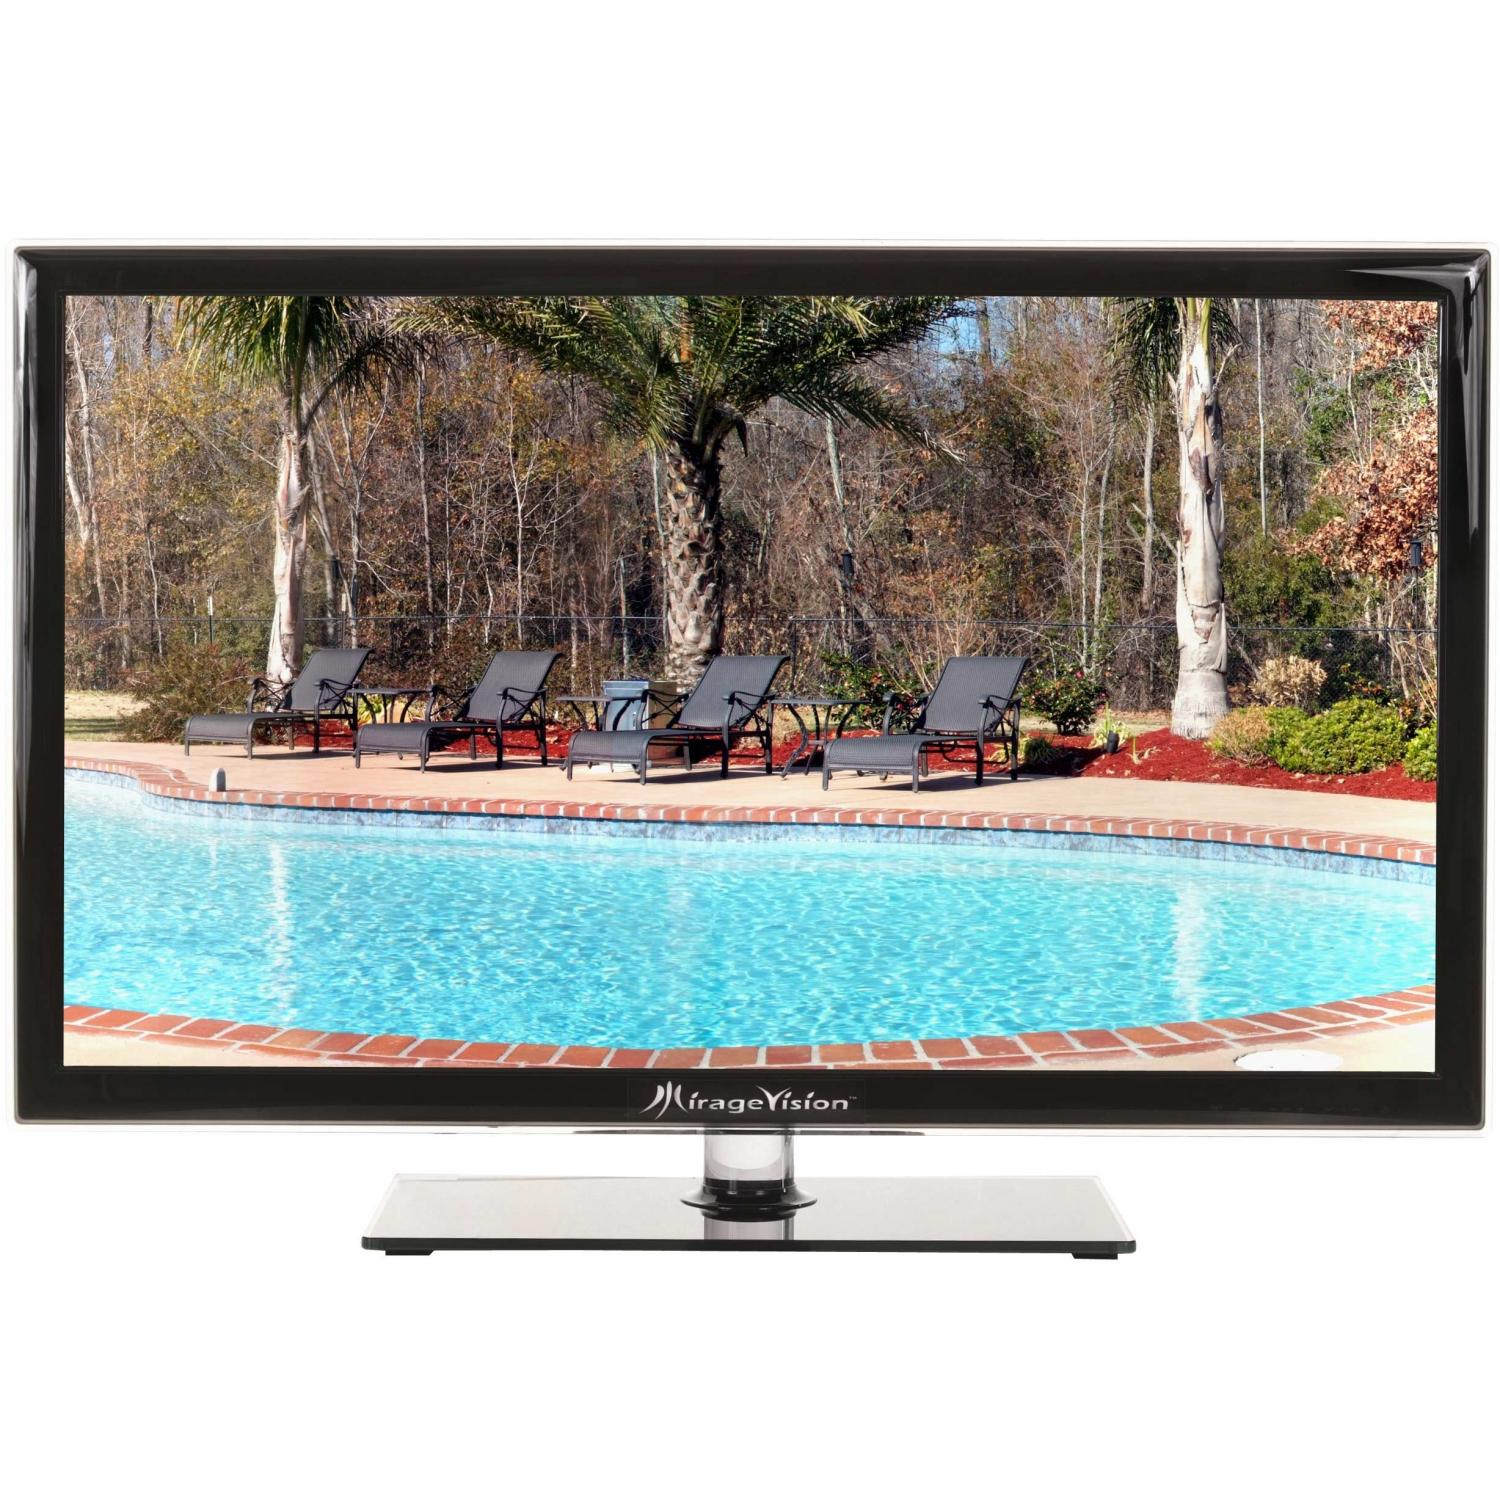 MirageVision 22 Inch HD Outdoor LED TV